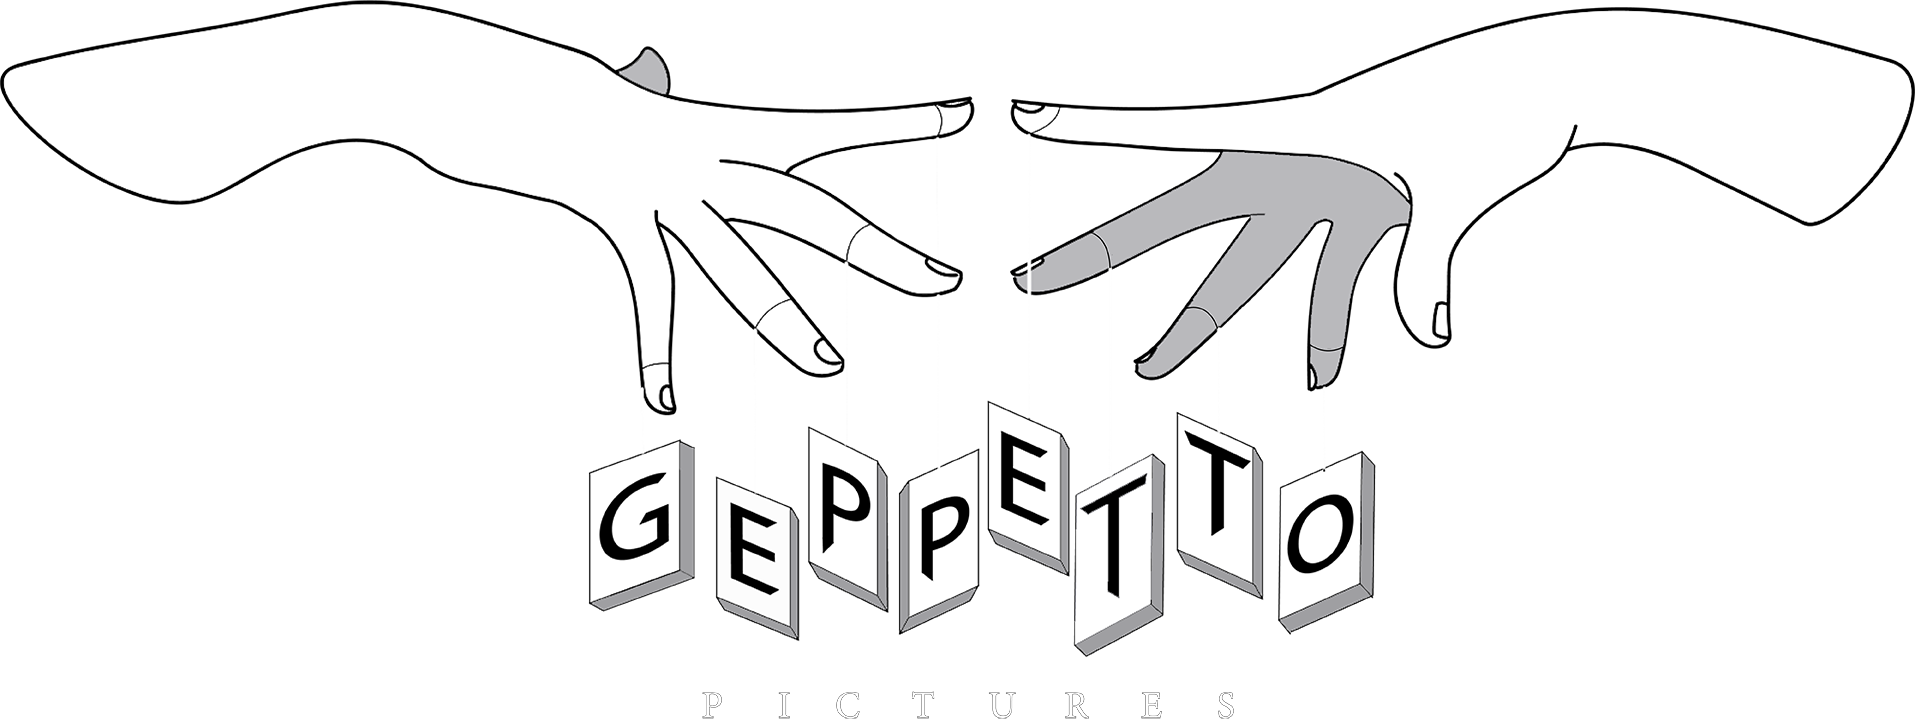 Geppetto Pictures